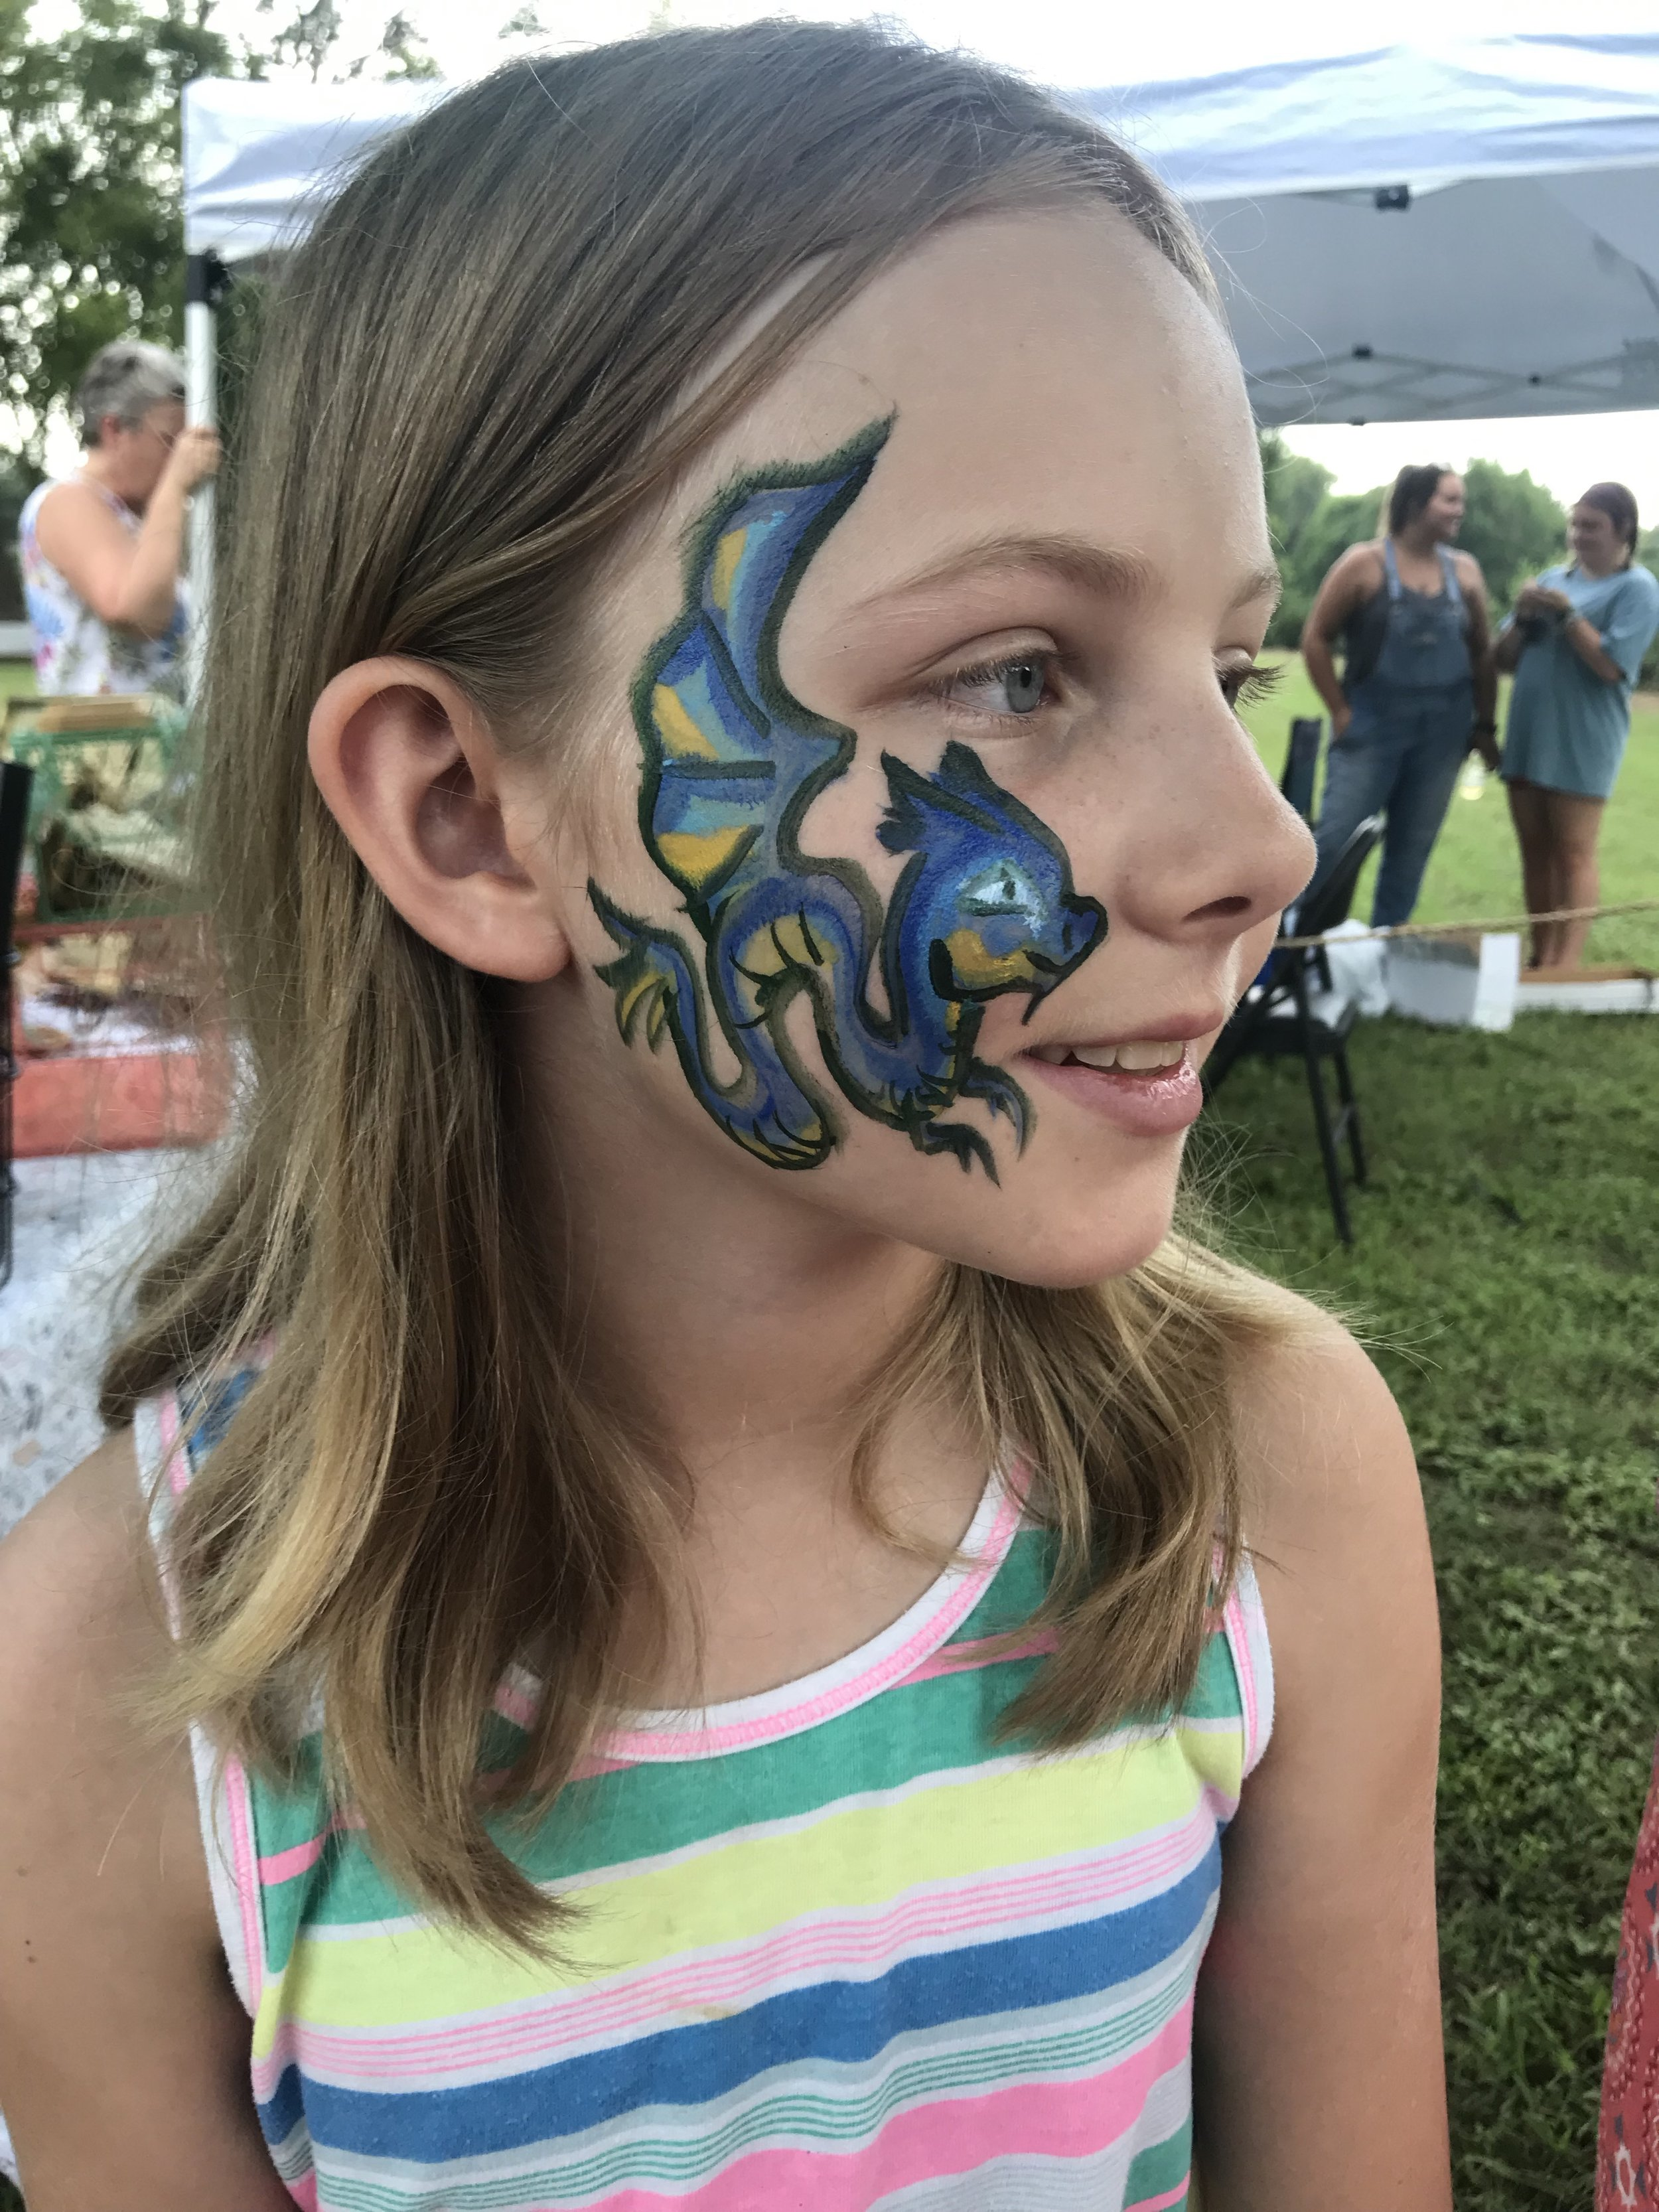 Medium Events - 50-100 kidscan paint 20 kids/hour$40/hr includes:1 professional face painter1 personal assistanthigh quality face paint and suppliestables and chairsbright blue event tent if needed*$25 travel fee if event is outside of Macon within 100miles2hr minimum